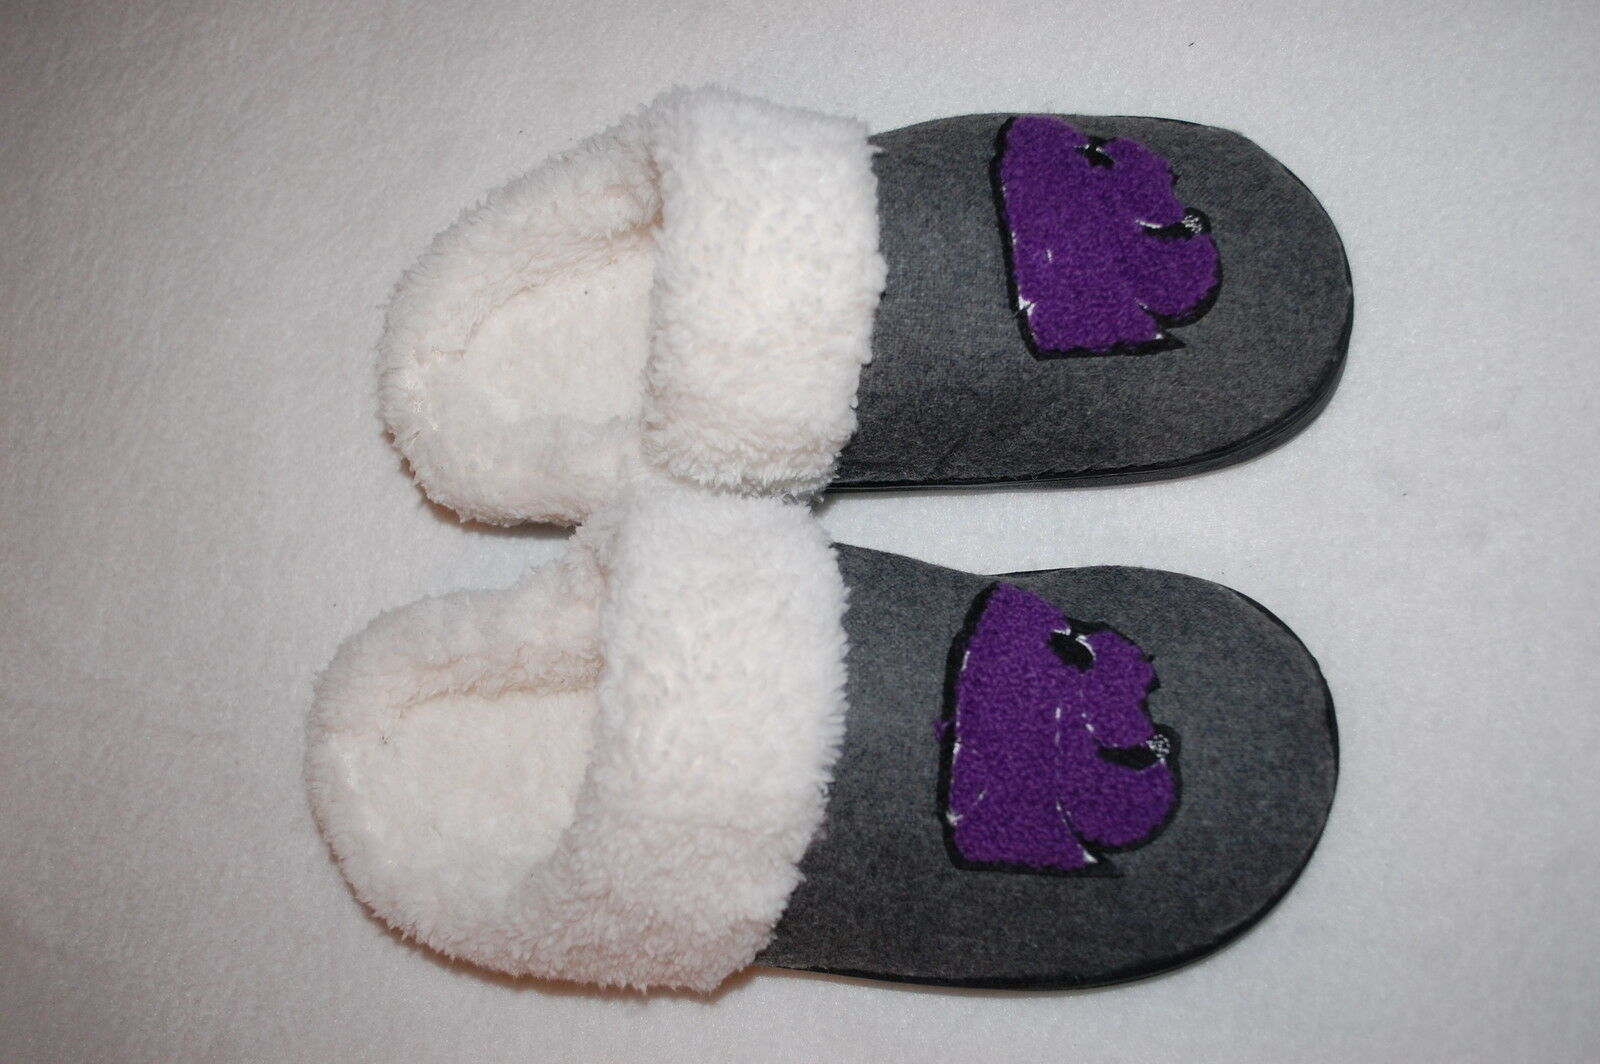 Womens Slippers K-STATE WILDCATS Powercats GRAY OPEN BACK Sherpa Lined S 5-6